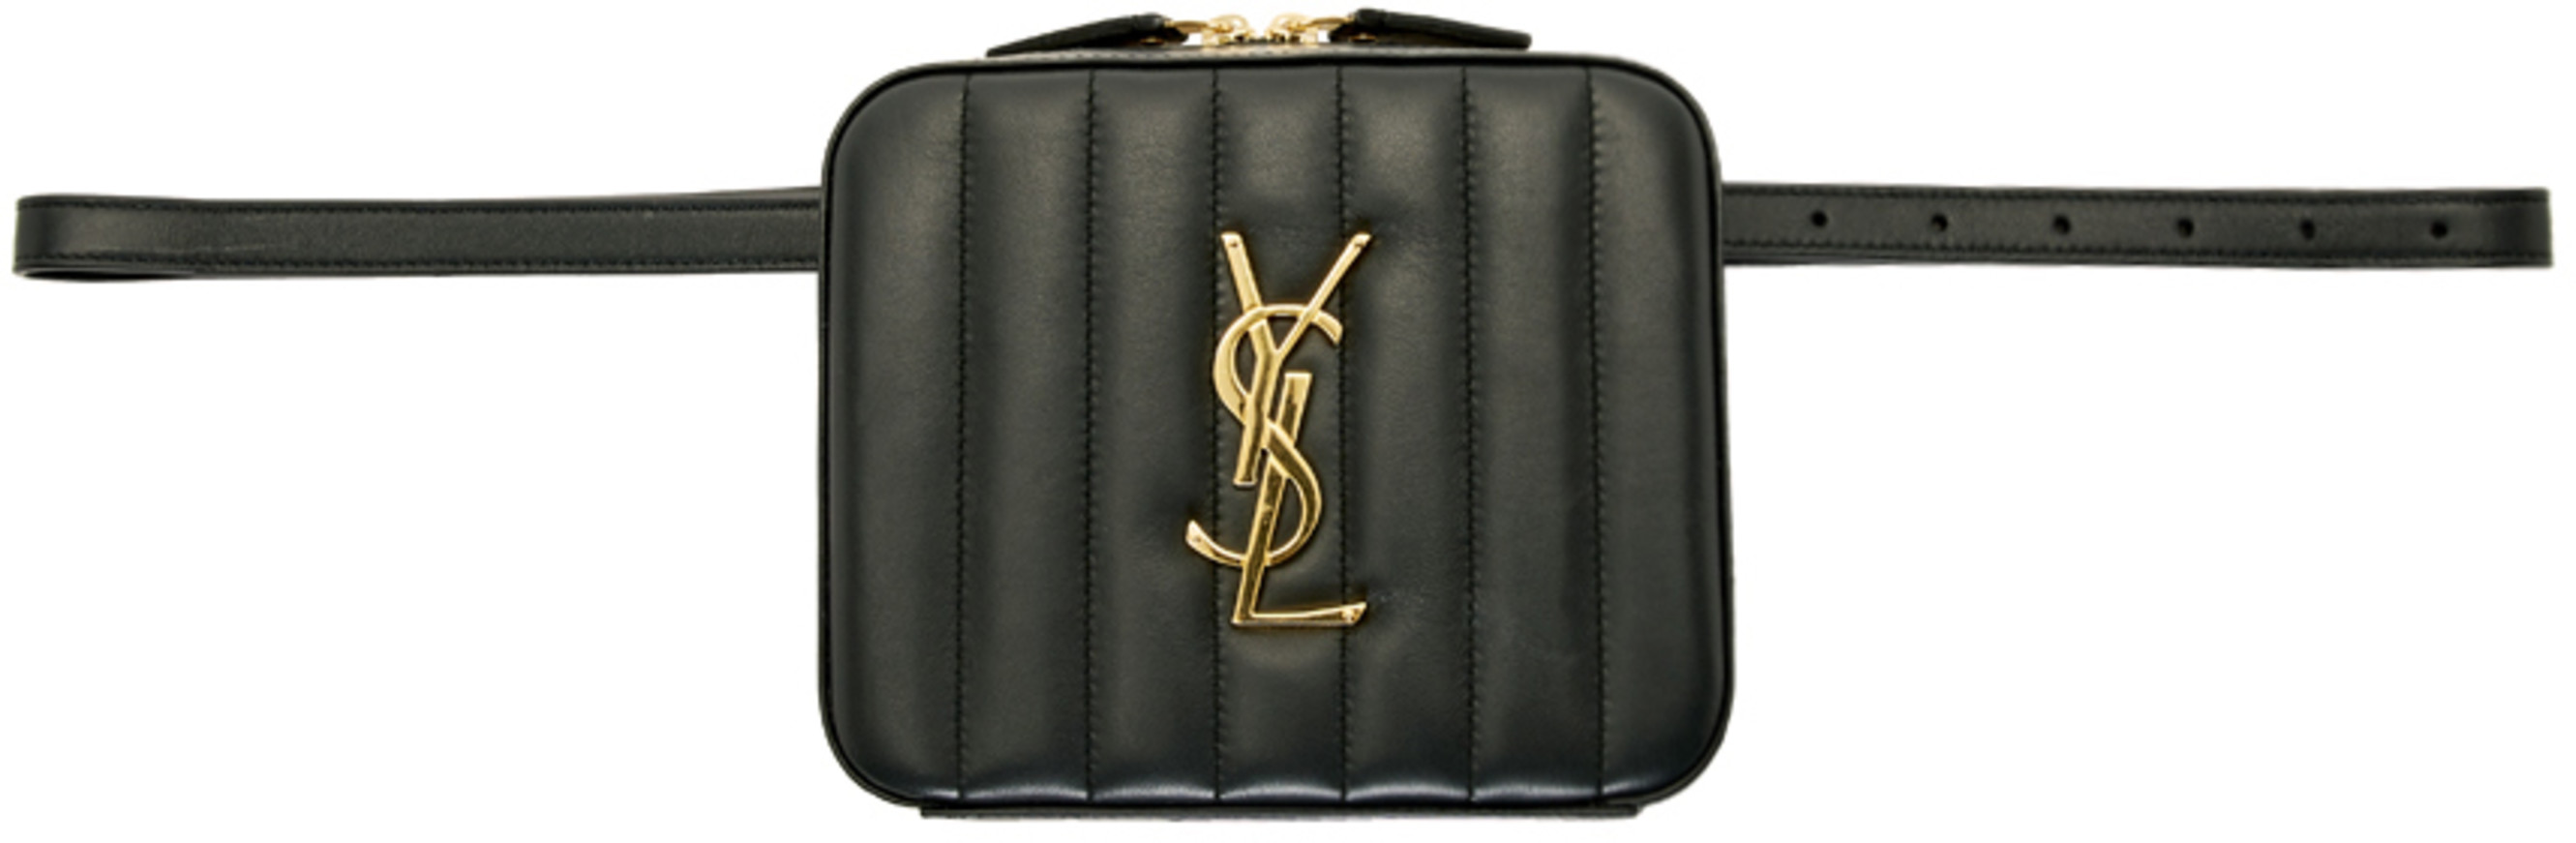 Saint Laurent bags for Women  ceed2c56a4bf5